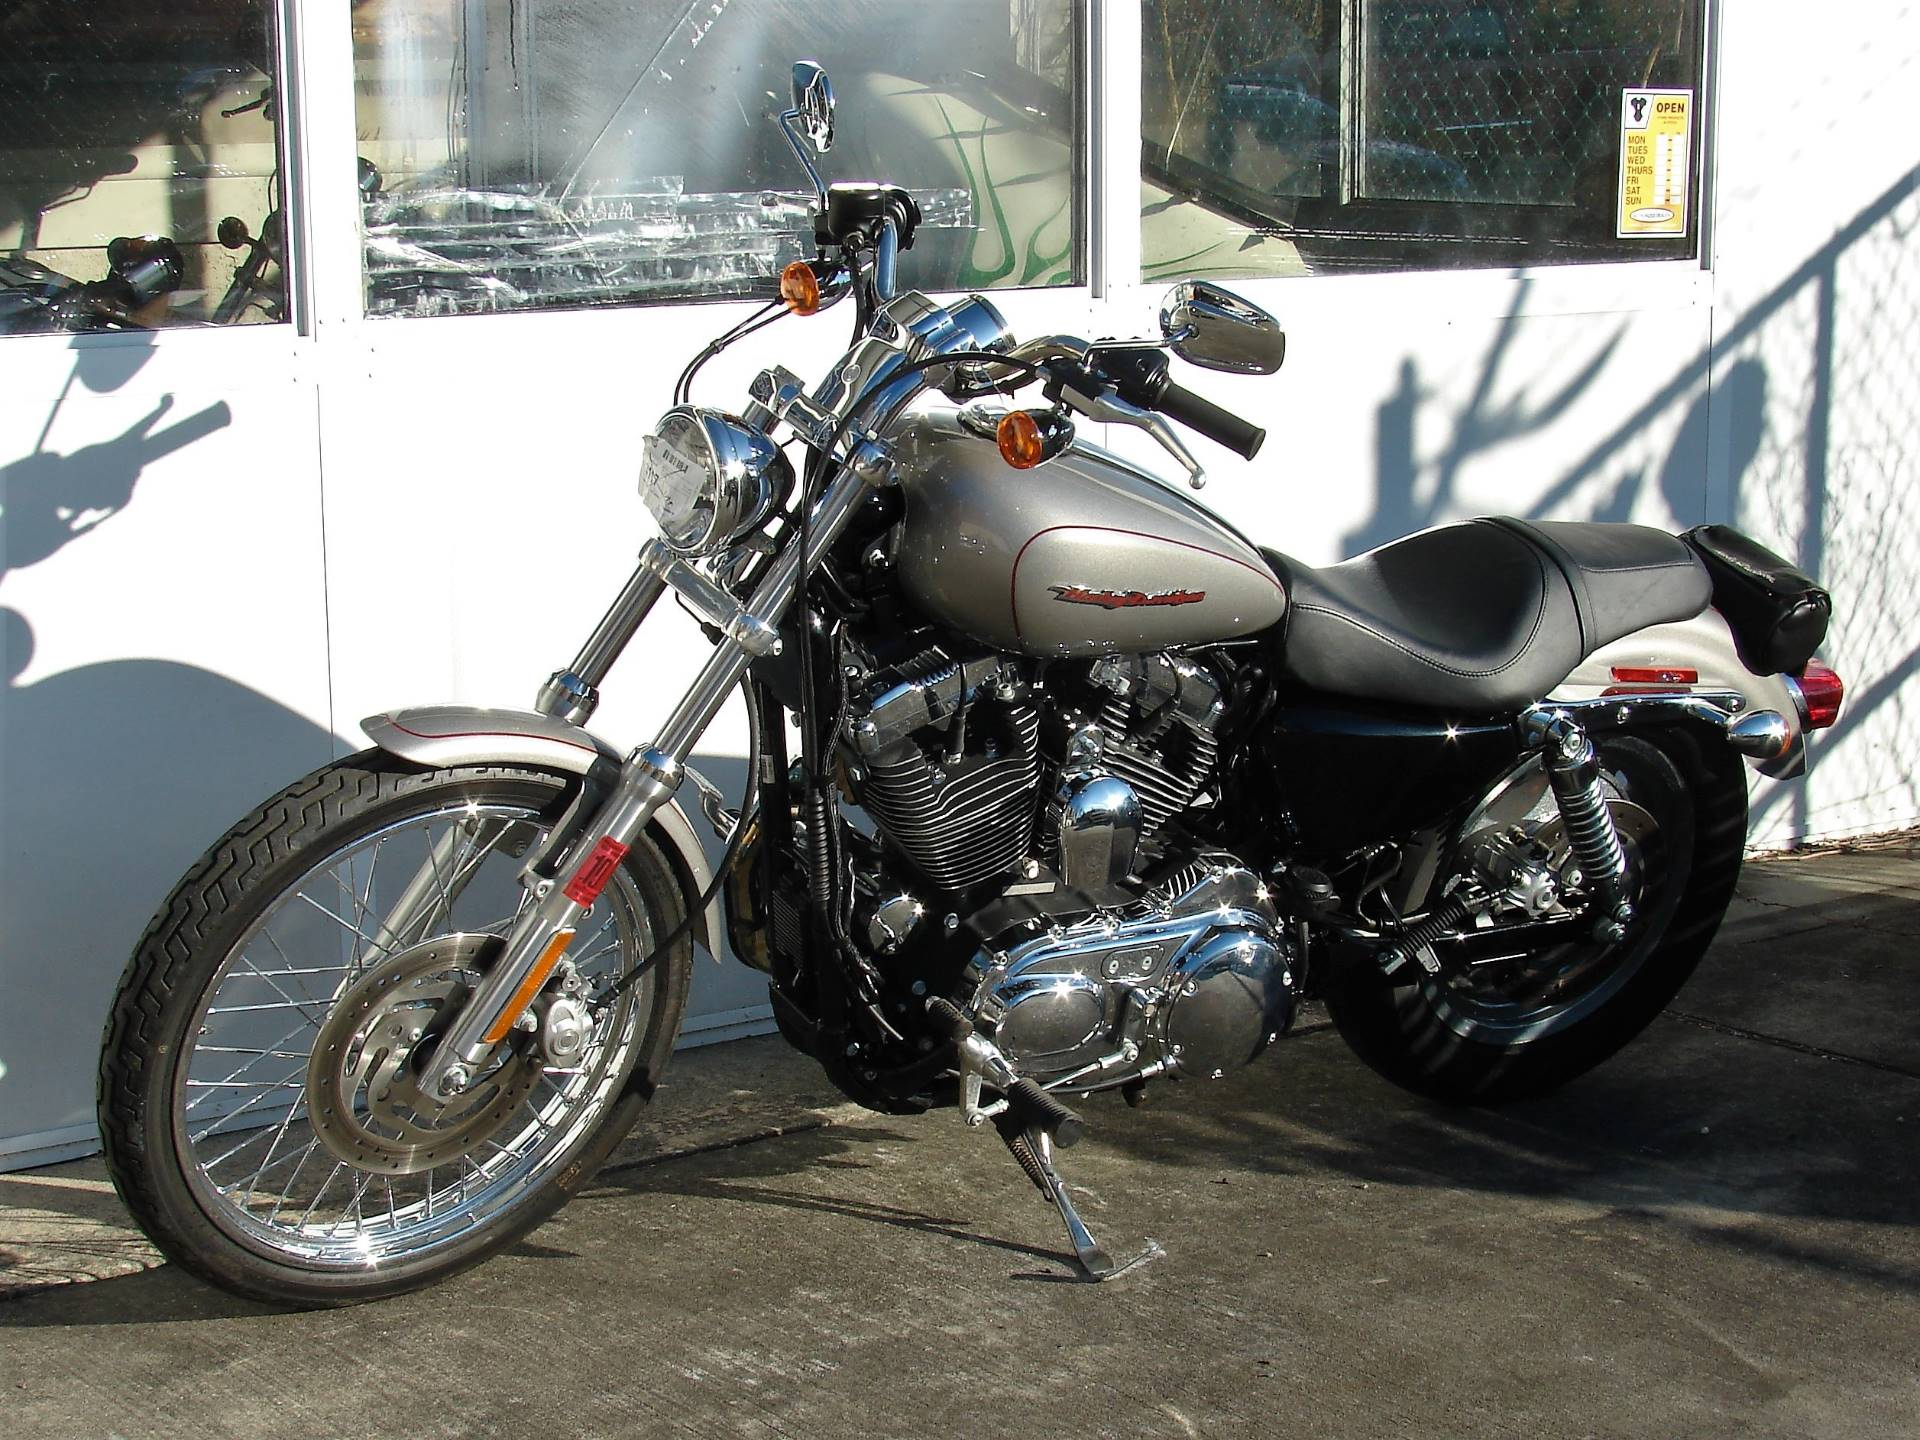 2007 Harley-Davidson XL 1200 Sportster Custom in Williamstown, New Jersey - Photo 9